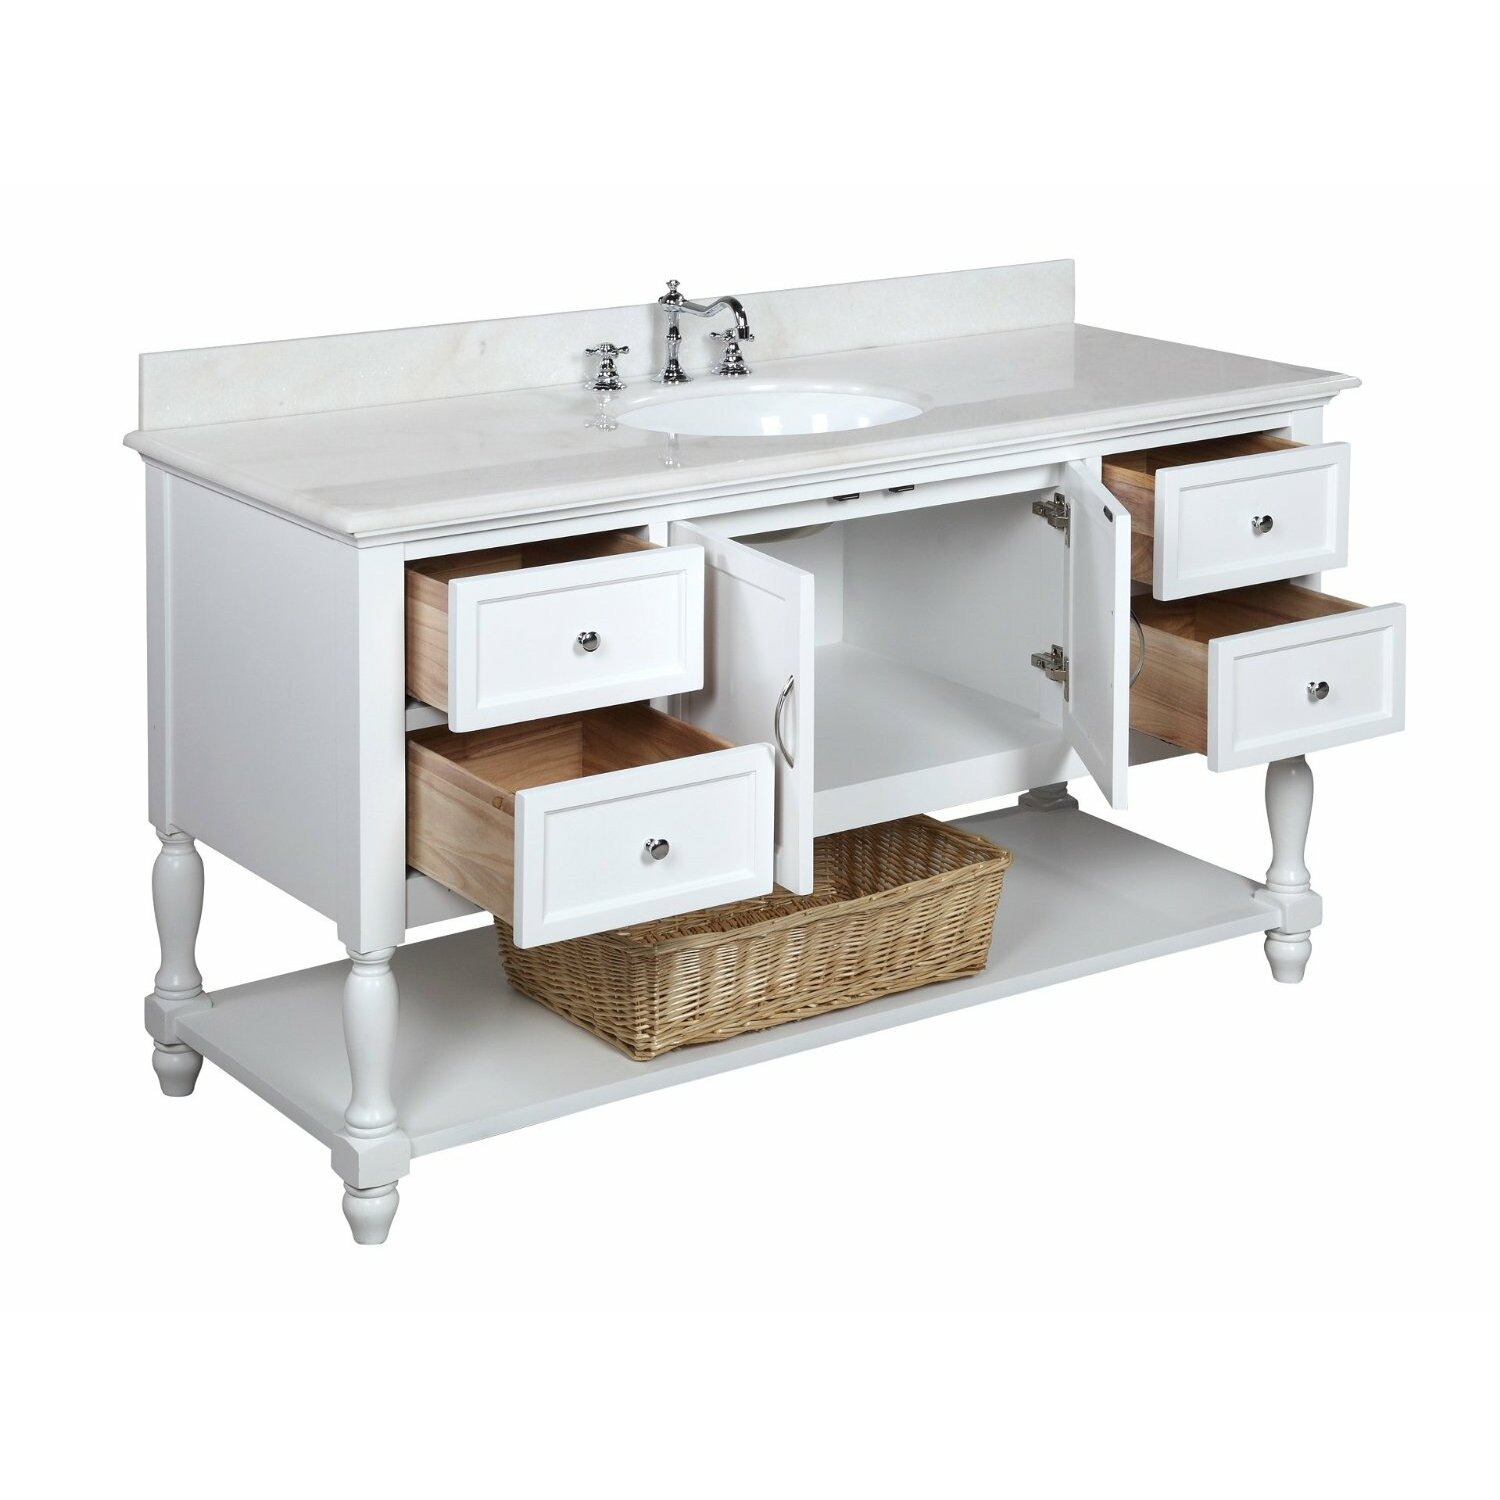 kitchen vanity with sink kbc beverly 60 quot single bathroom vanity set amp reviews wayfair 6378